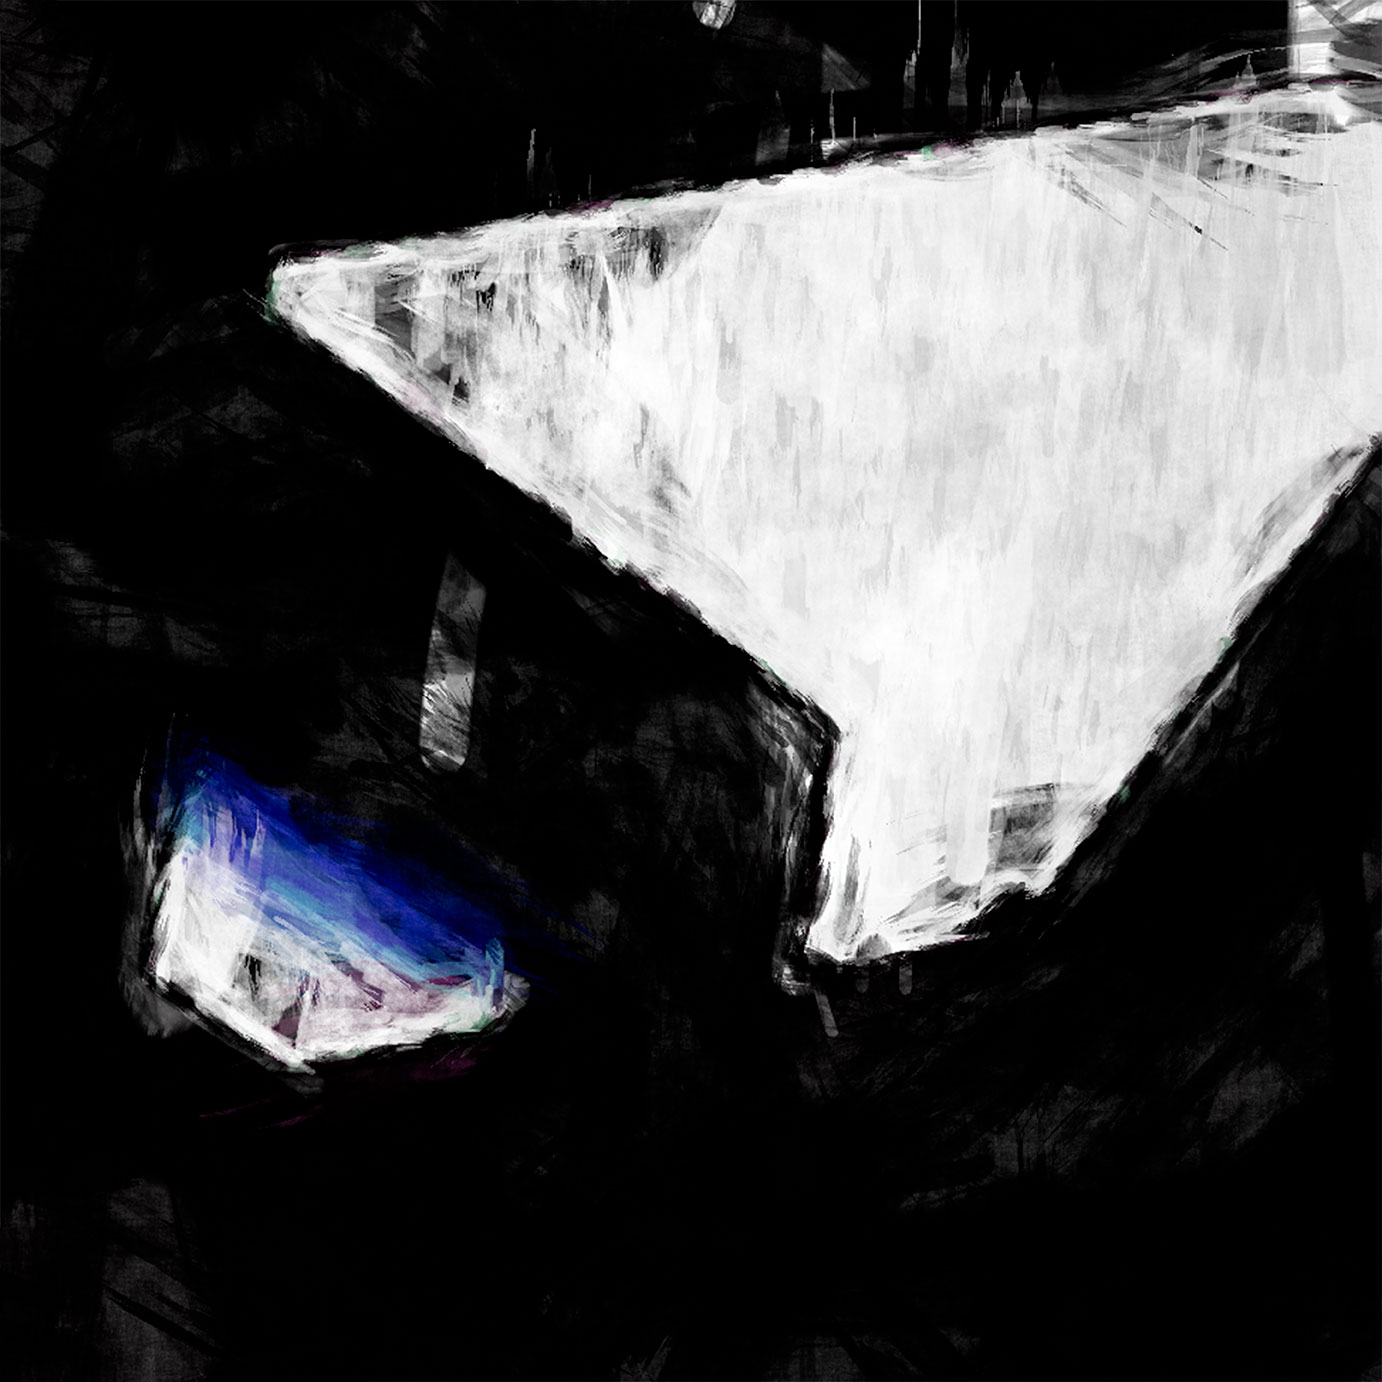 ABSTRACT-black-and-White-with-Blue.jpg